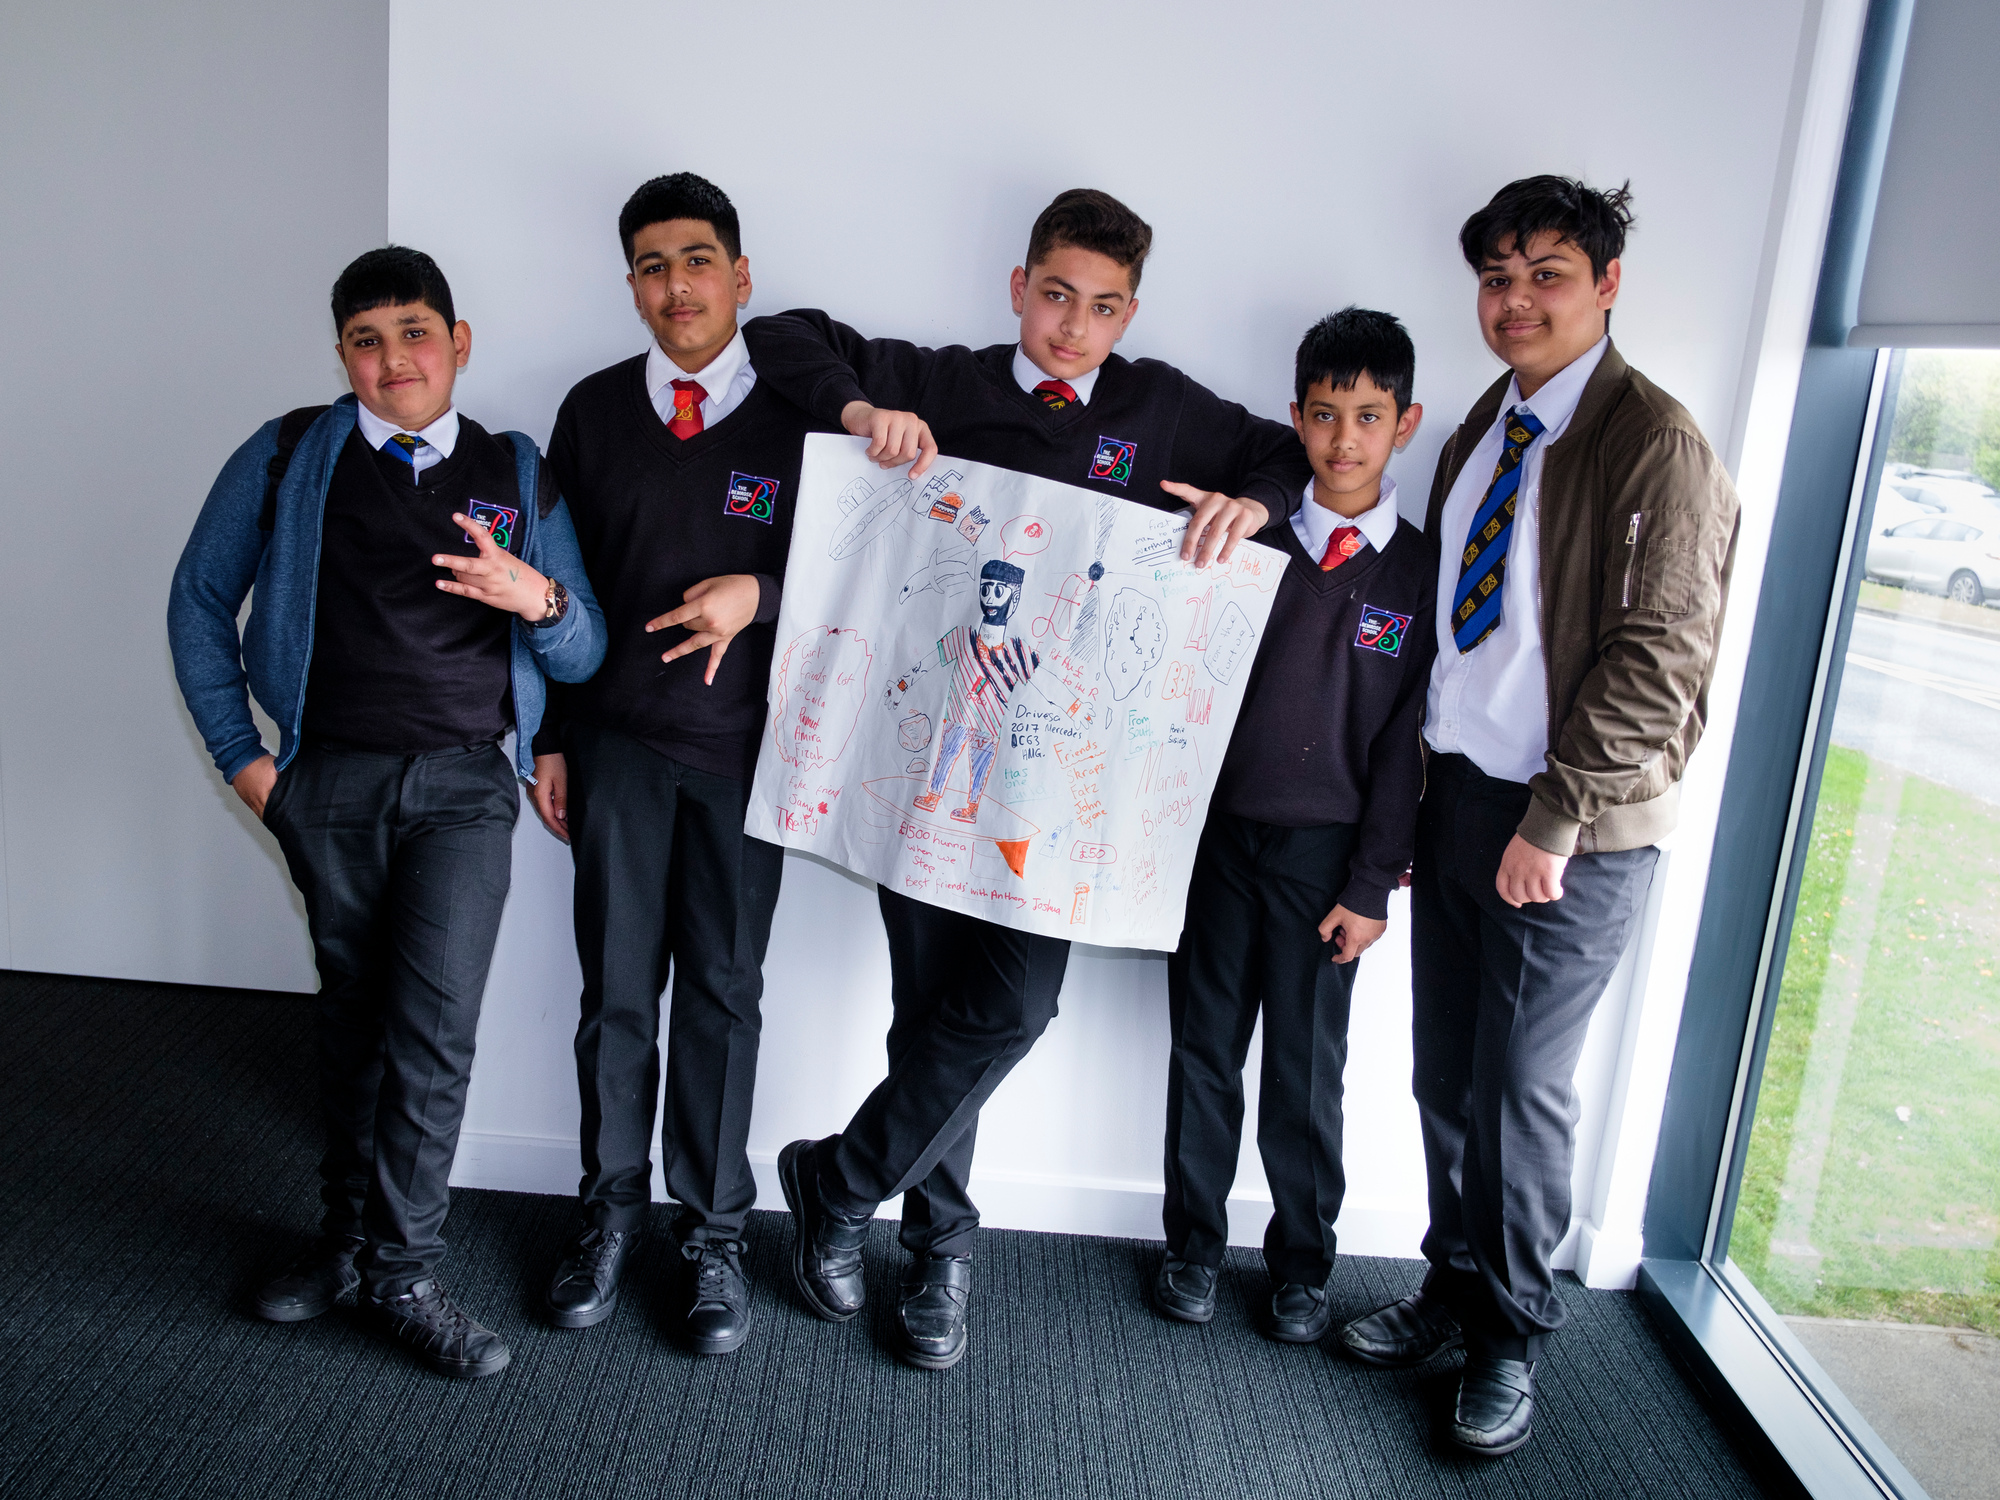 Five students presenting their work on a Year 7 Experience Day at the University.